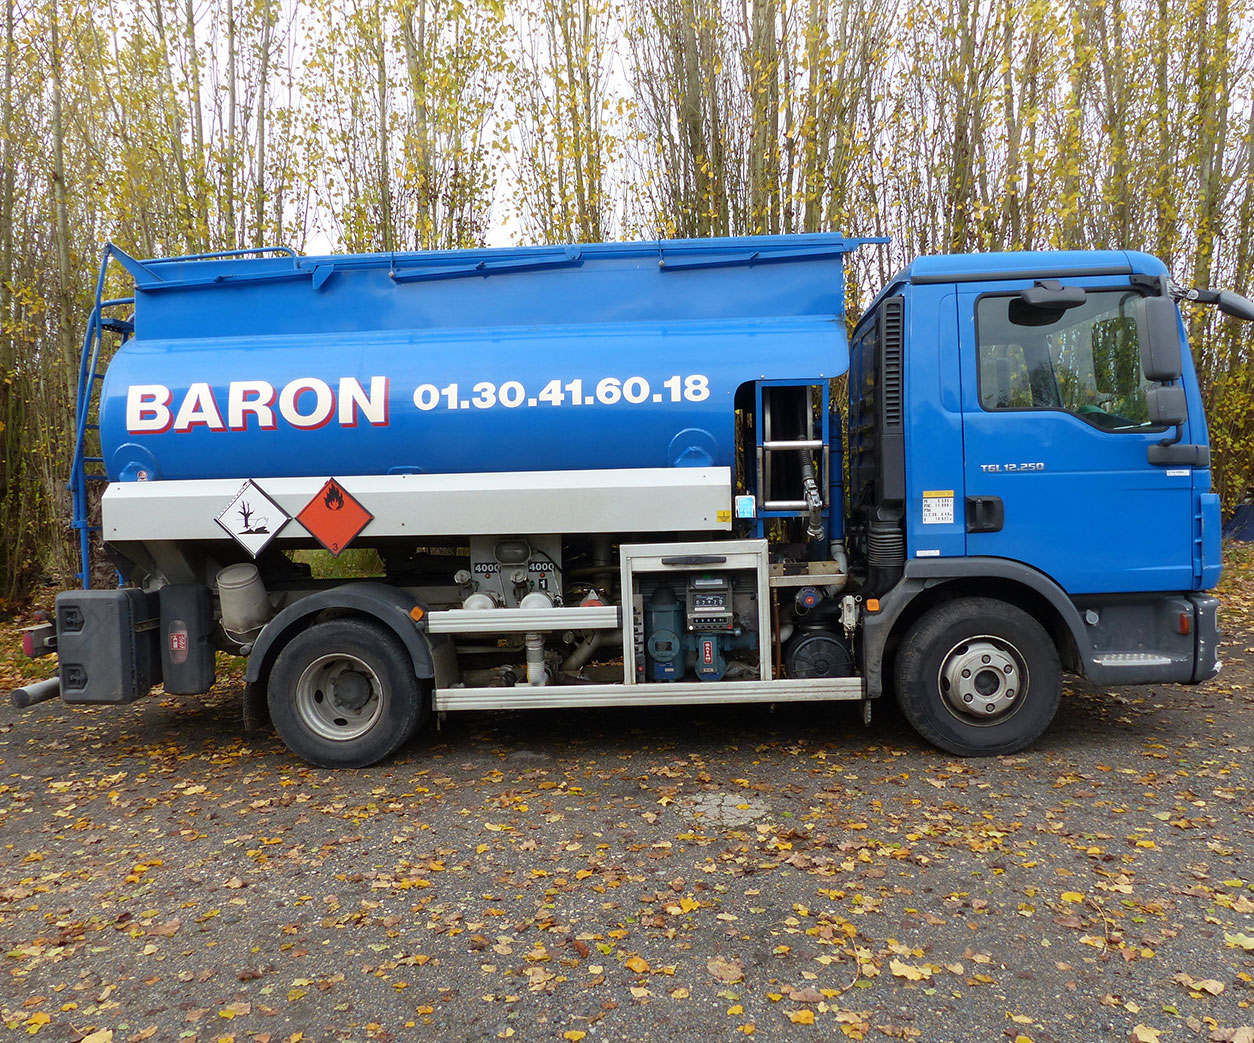 camion d'intervention